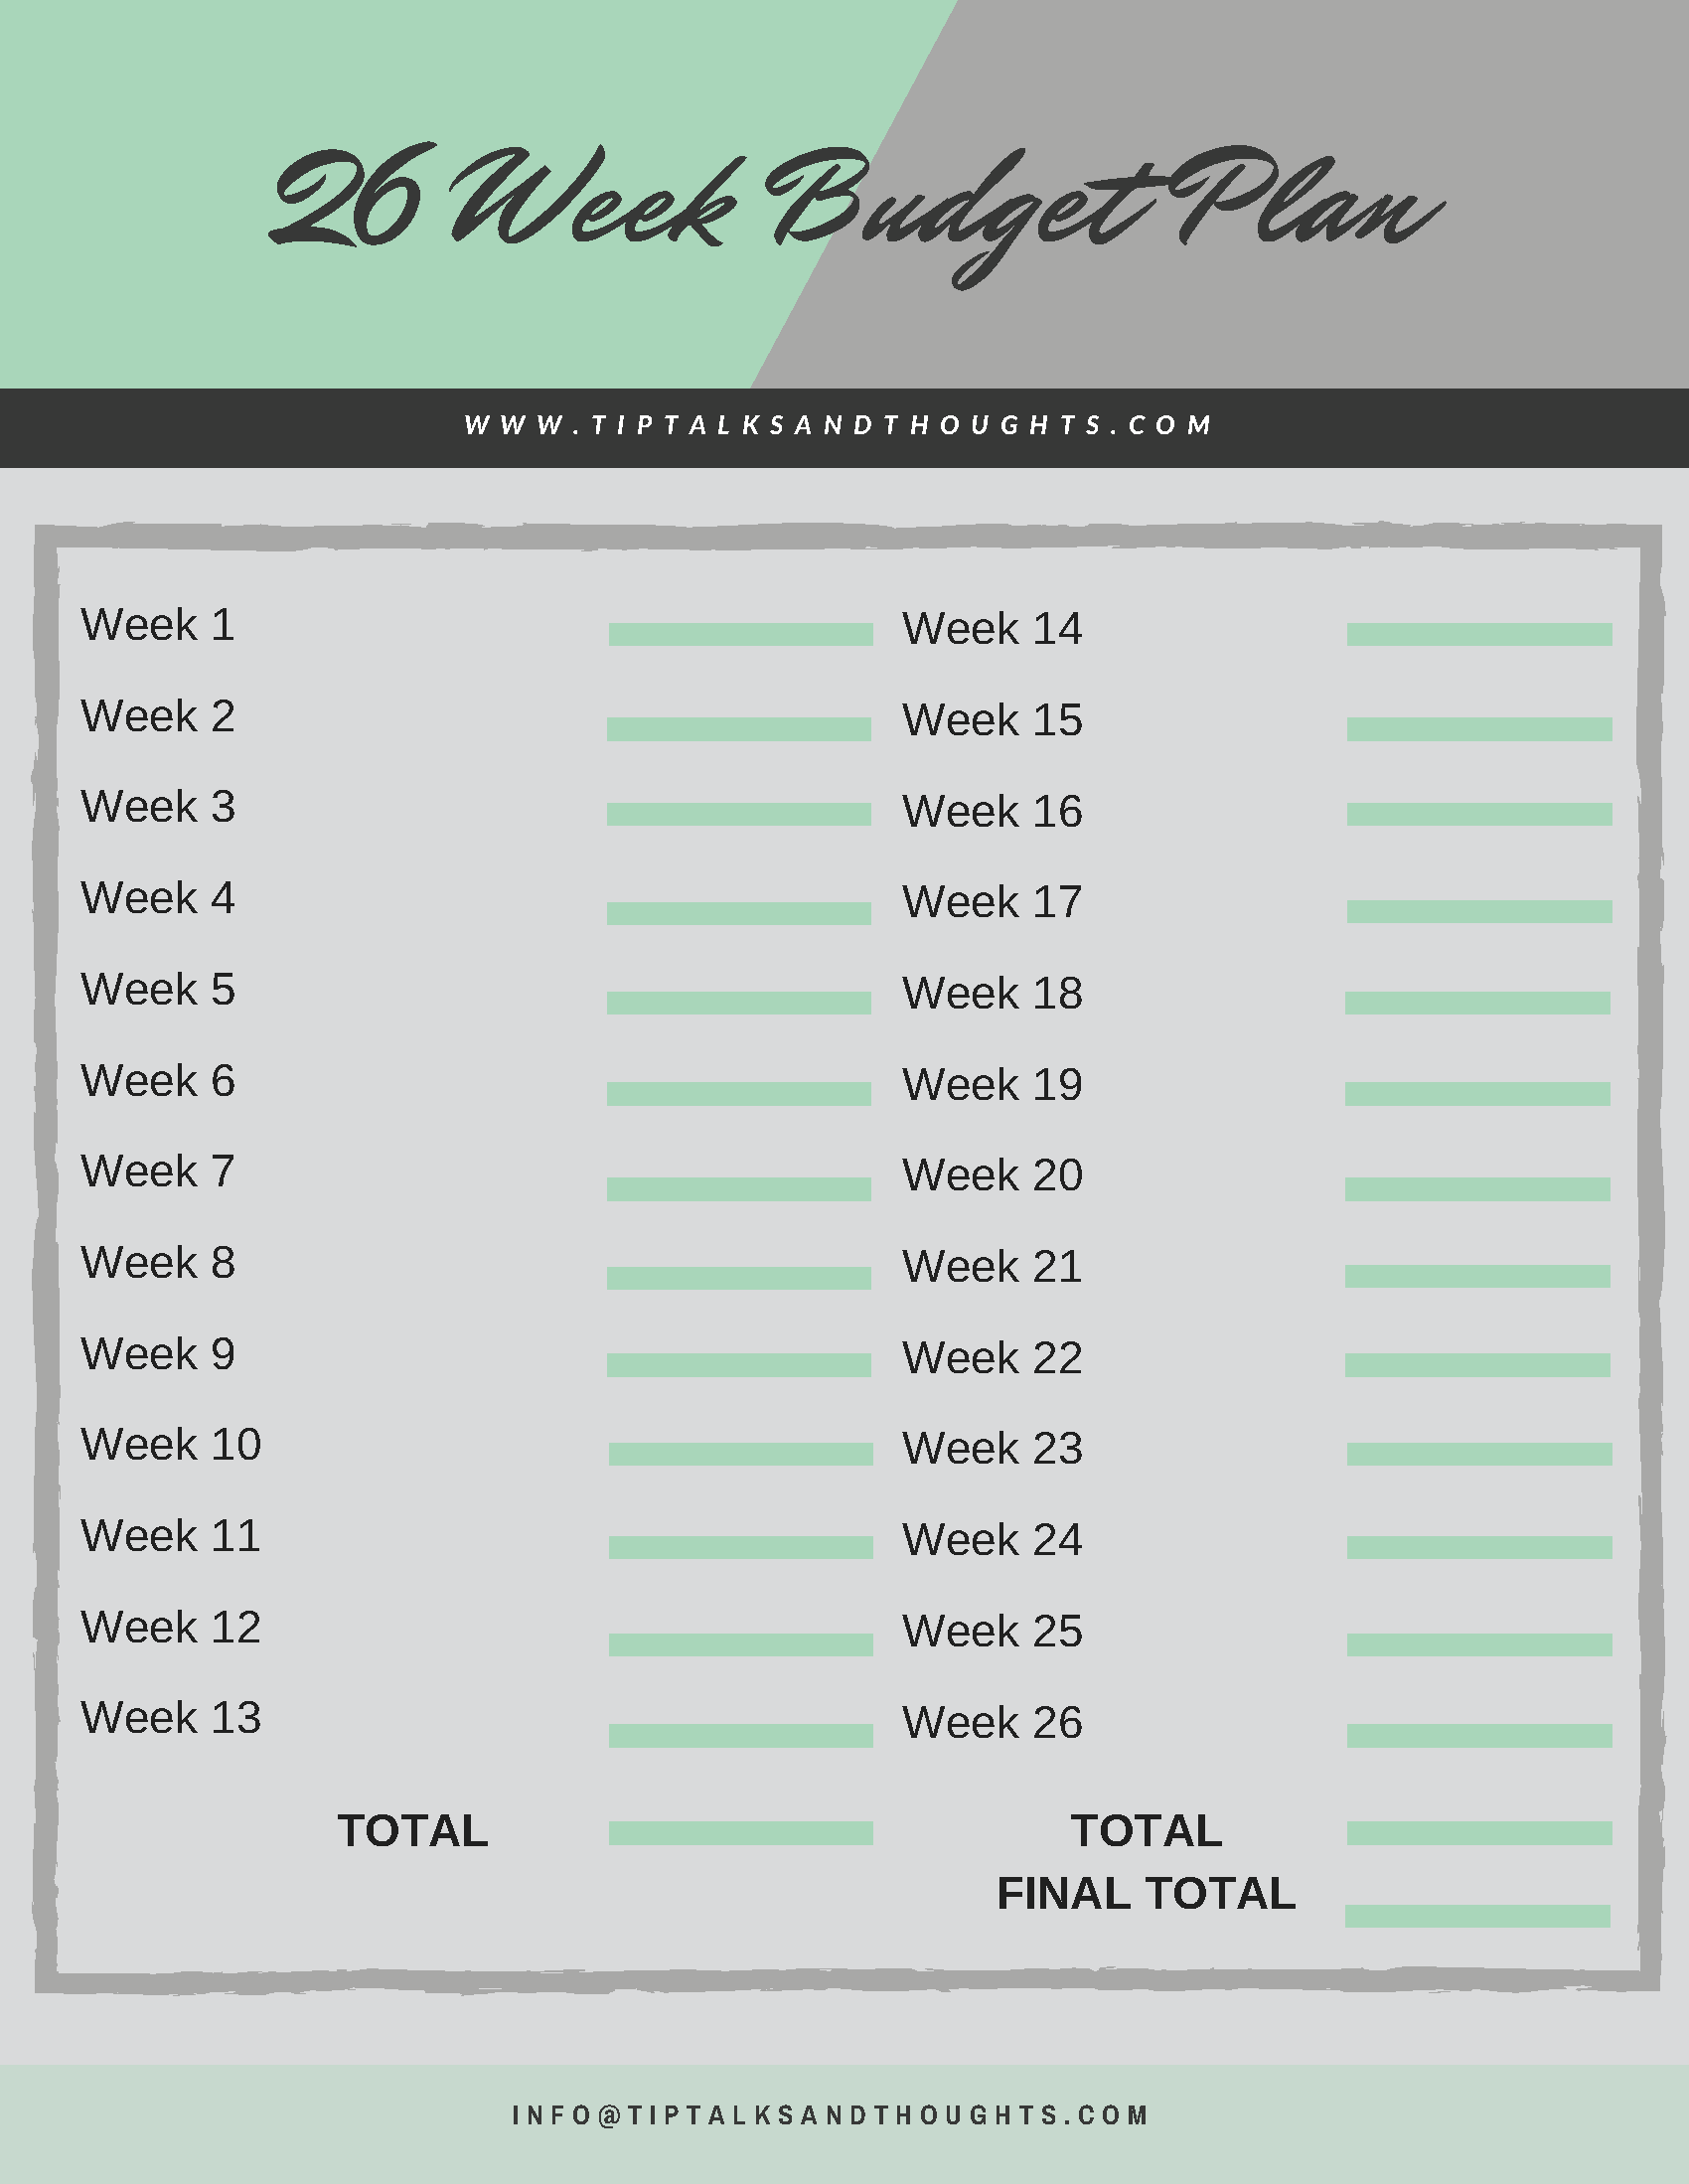 26 Week Budget Plan With Images